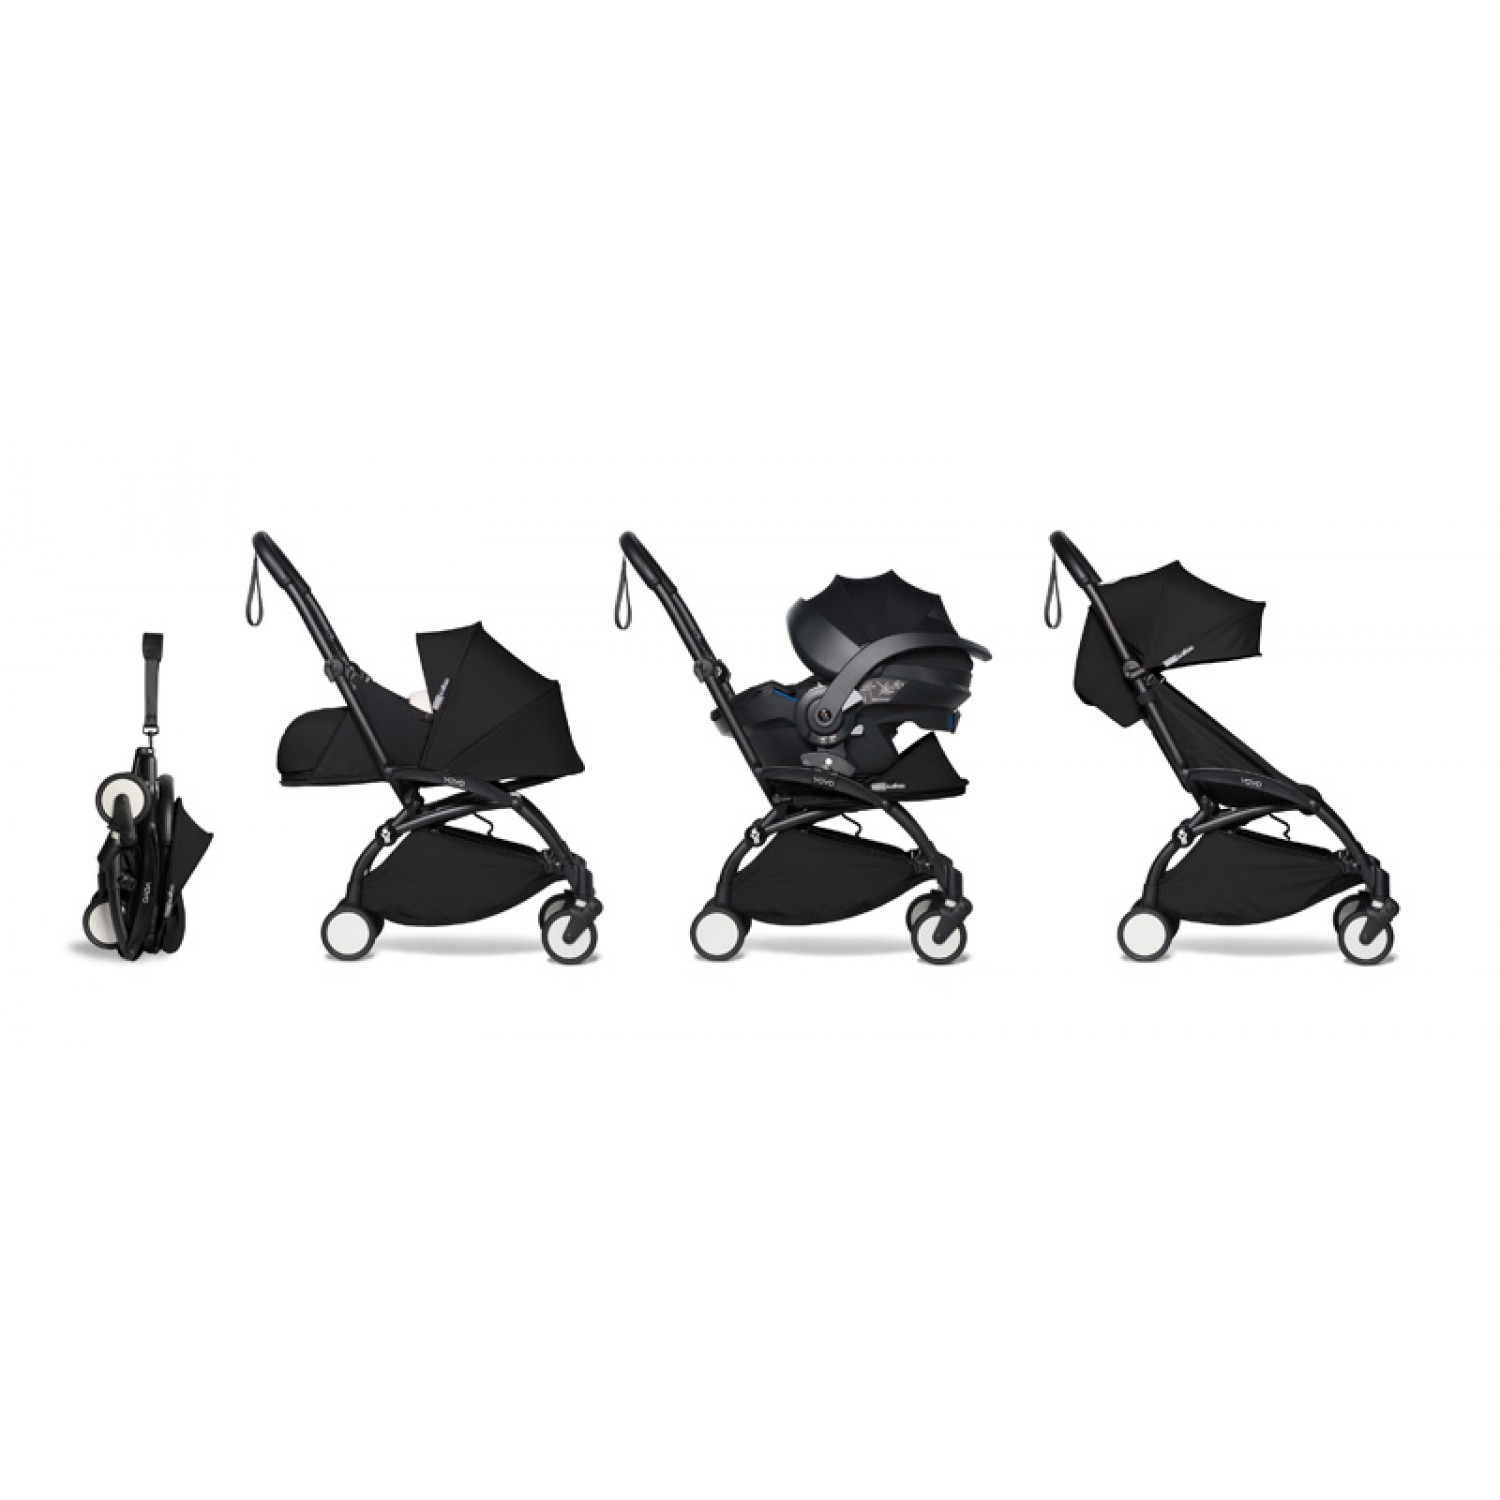 All-in-one BABYZEN stroller YOYO2 0+, car seat and 6+  | Black Chassis Black